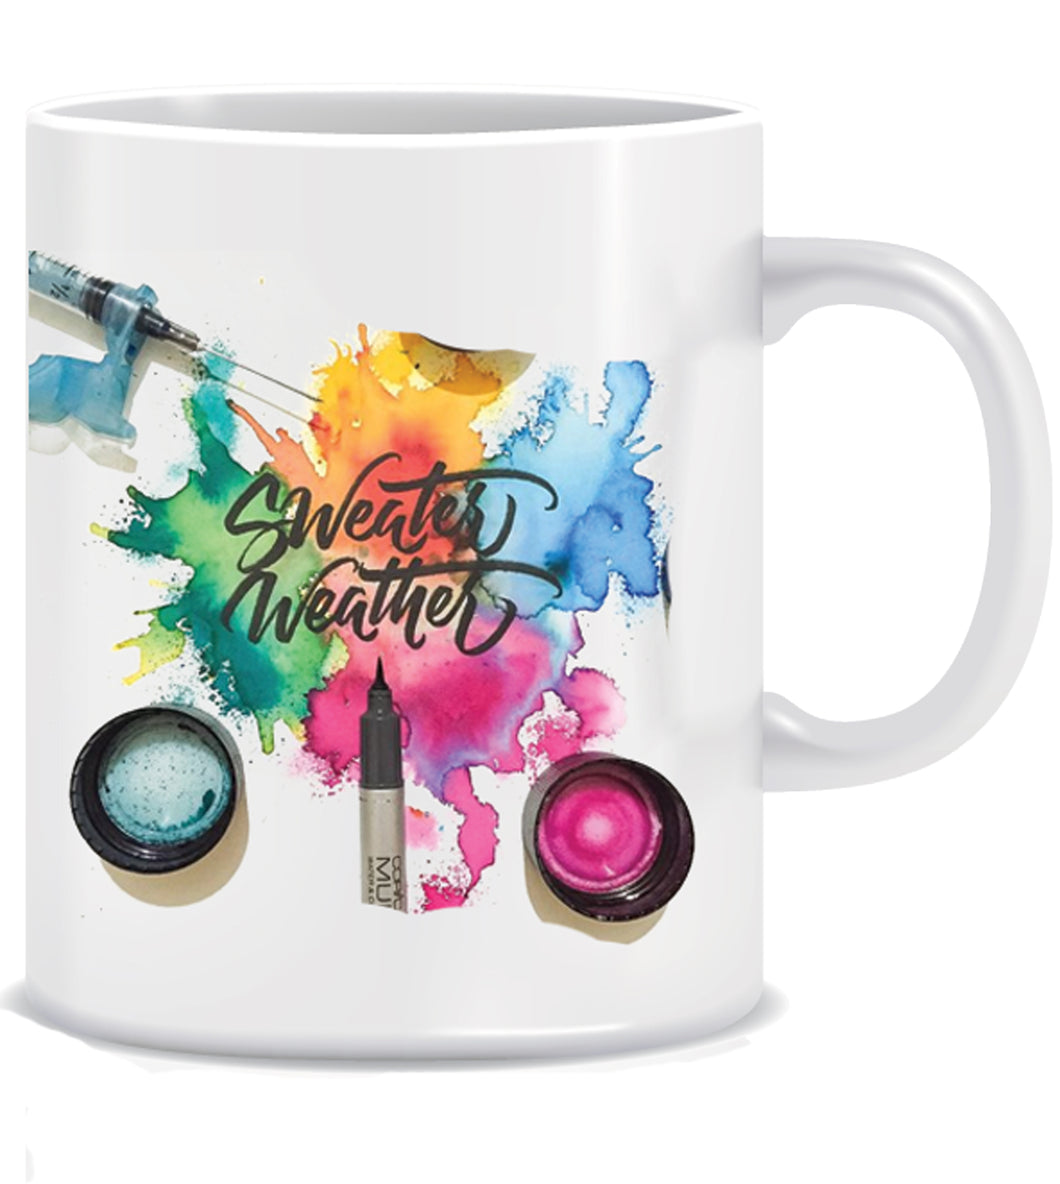 Sweater Weather Ceramic Coffee Mug ED037